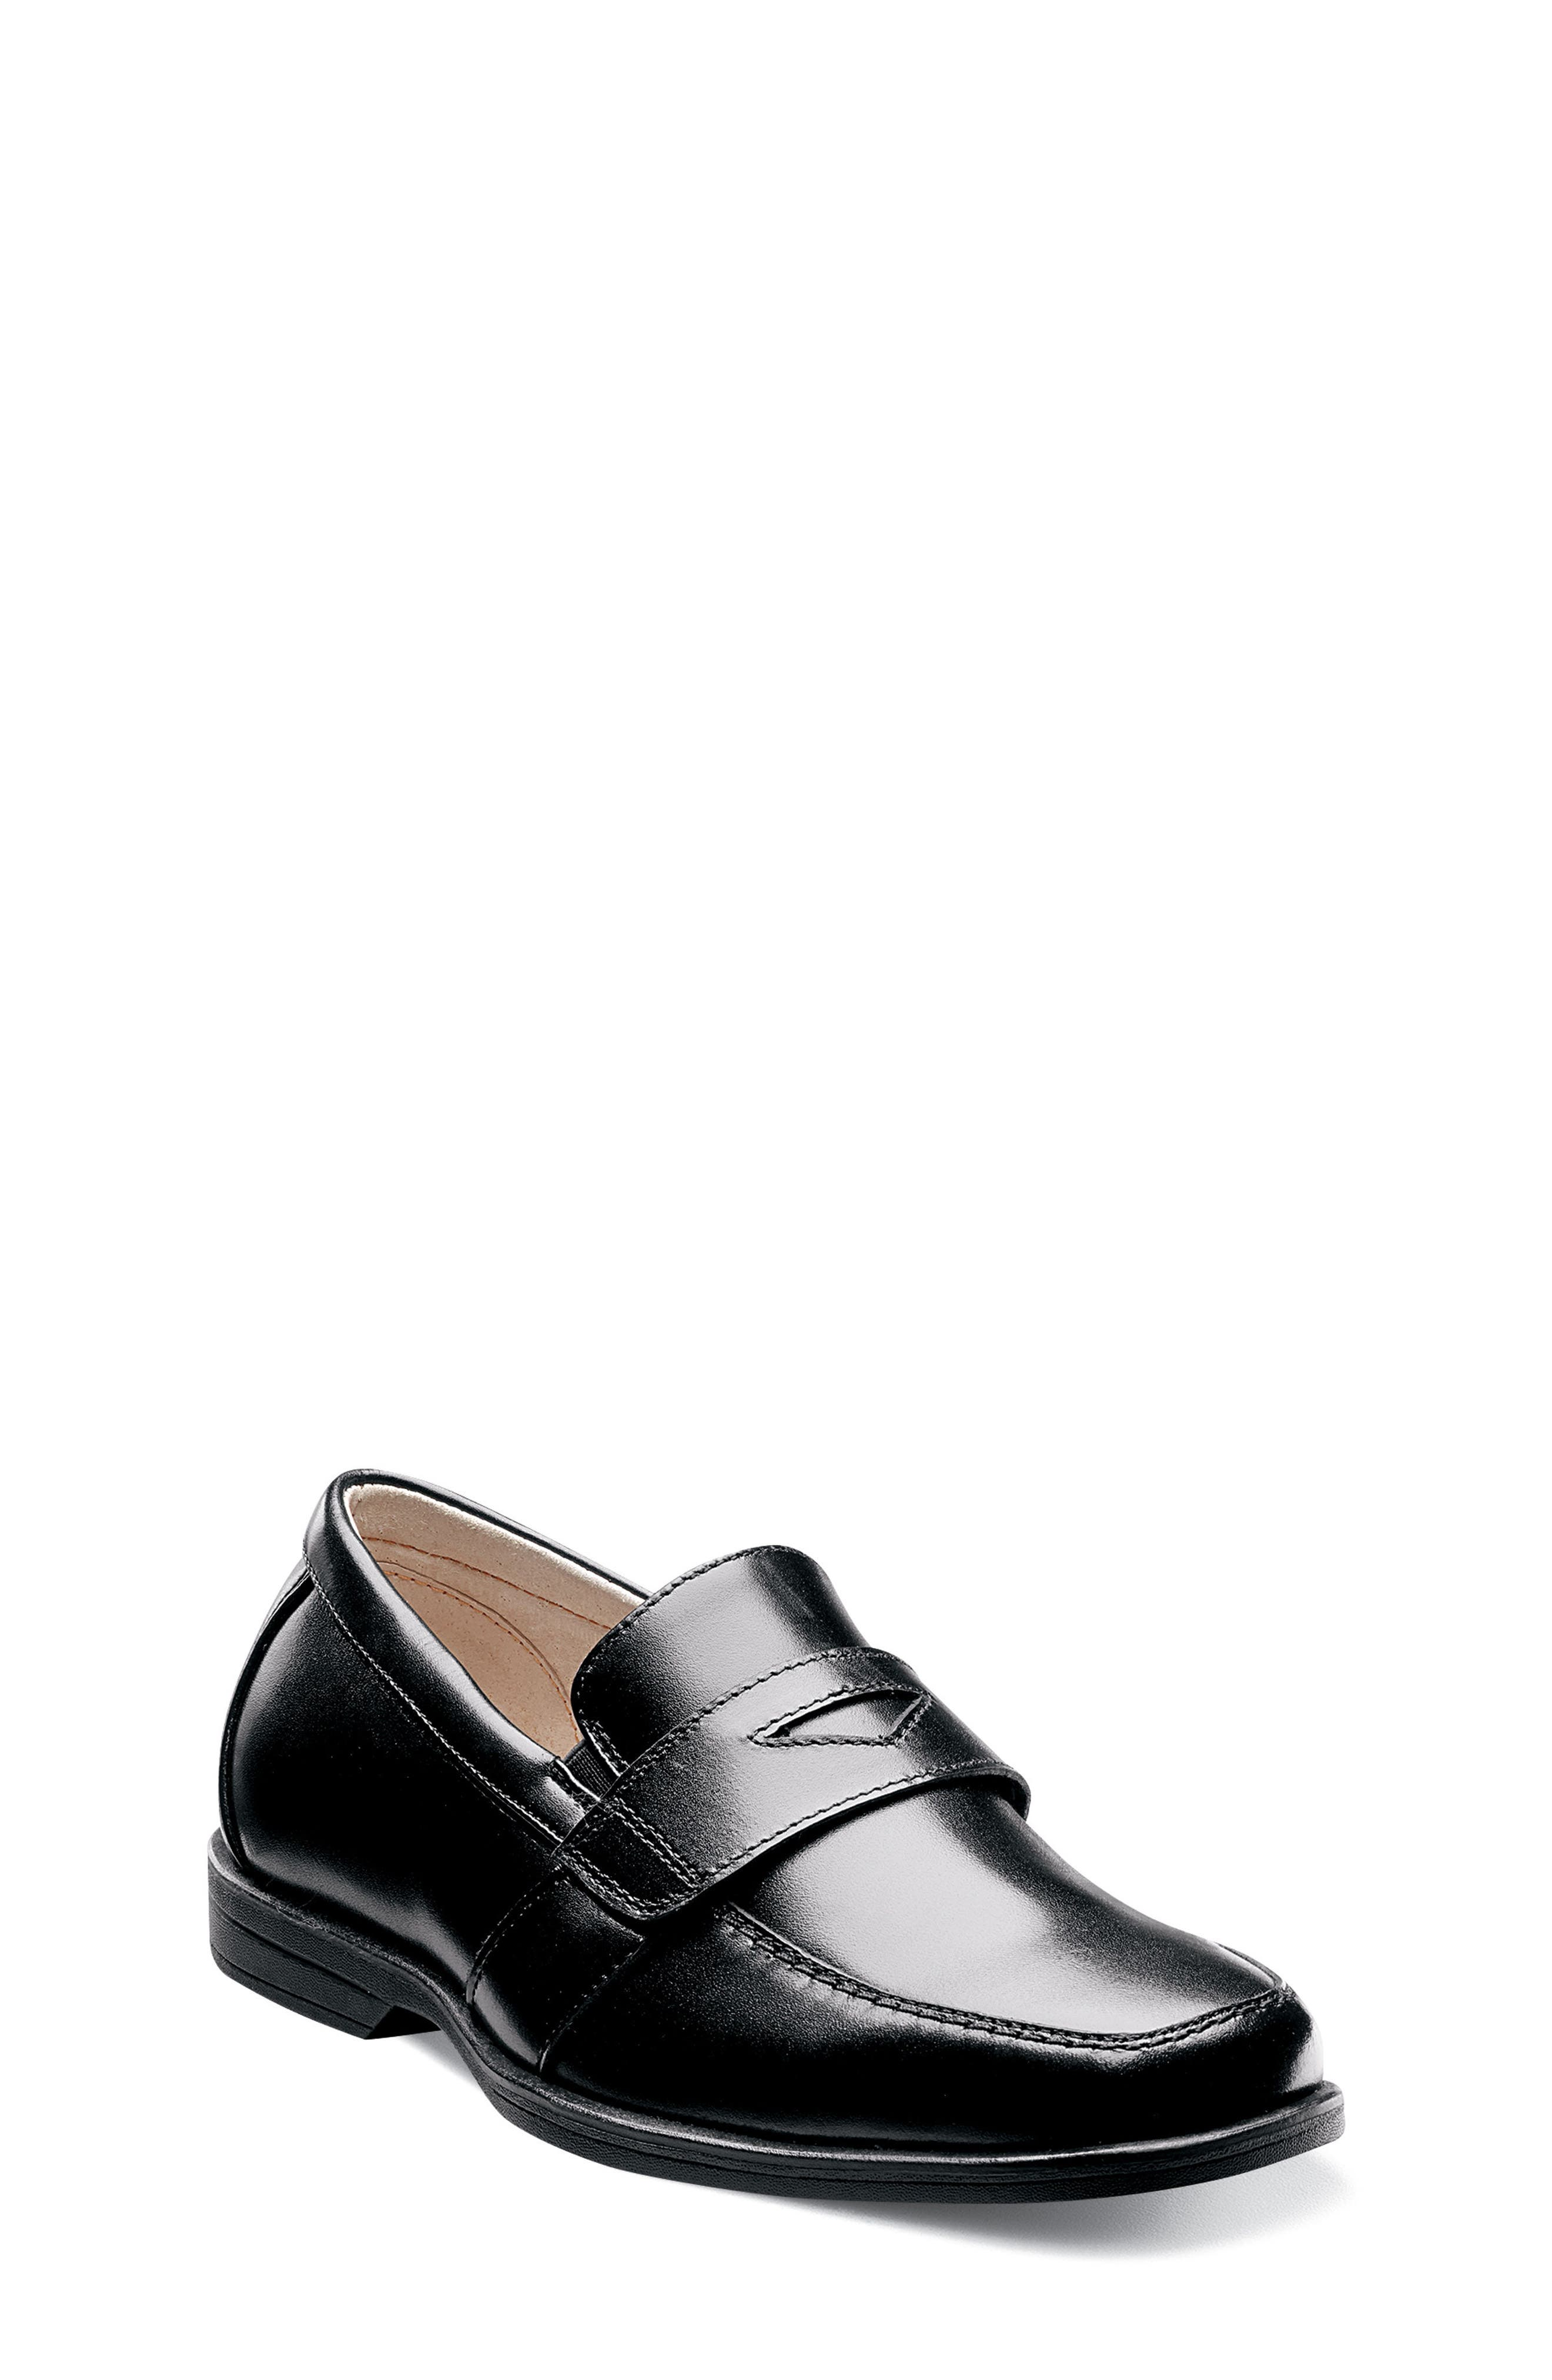 'Reveal' Penny Loafer,                         Main,                         color, BLACK